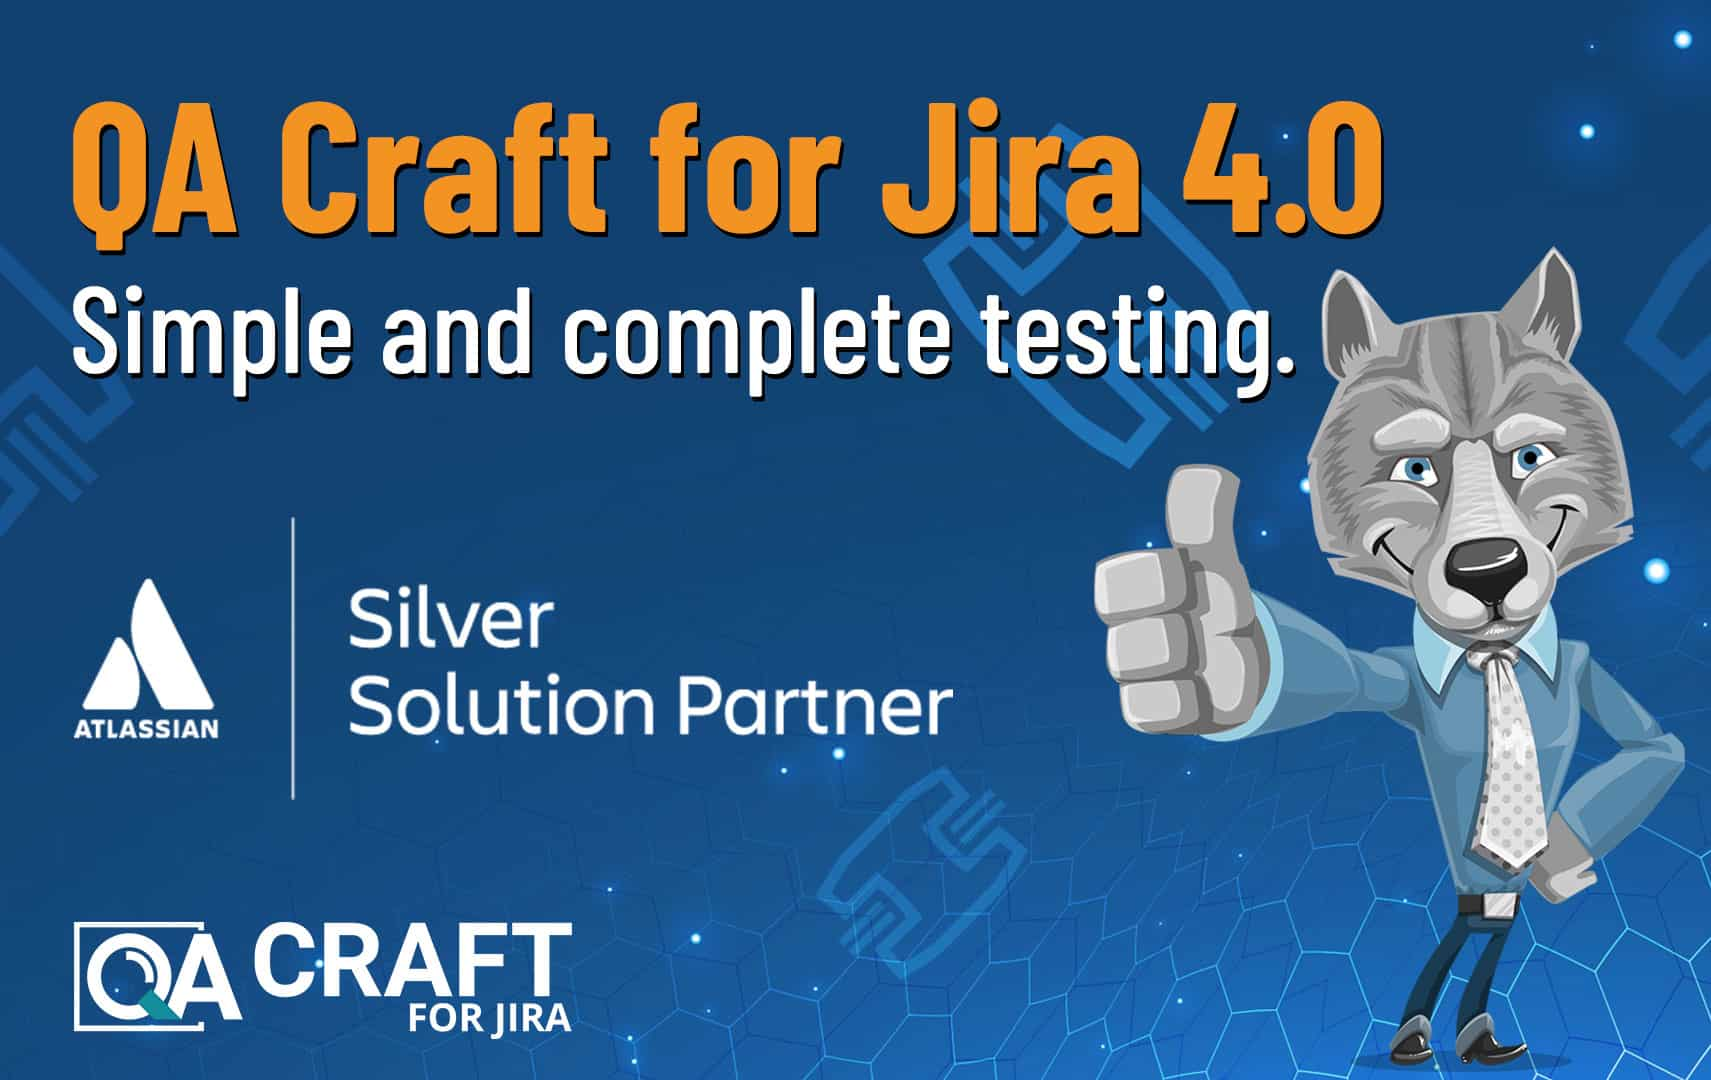 QA Craft for Jira 4.0 Simple and complete testing